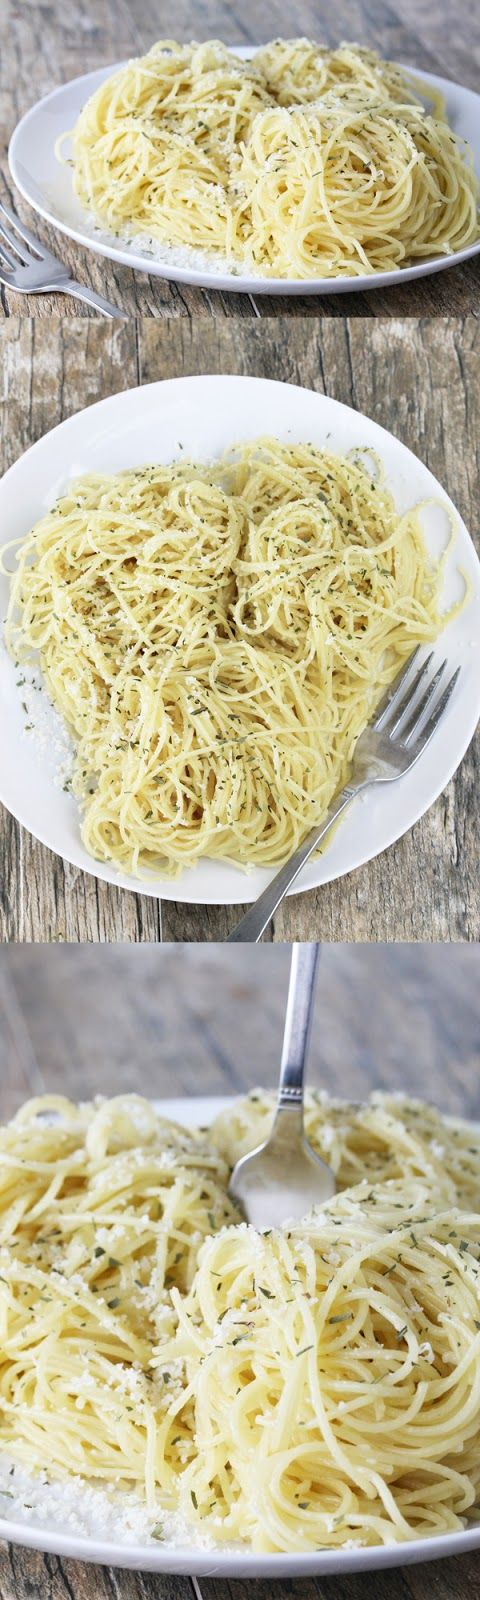 Brown Butter Garlic Parmesan Angel Hair Pasta. A quick, easy, elegant dish you can whip up in under 15 minutes. Add some meat and/or veggies for a complete meal, or leave it as a simple side.